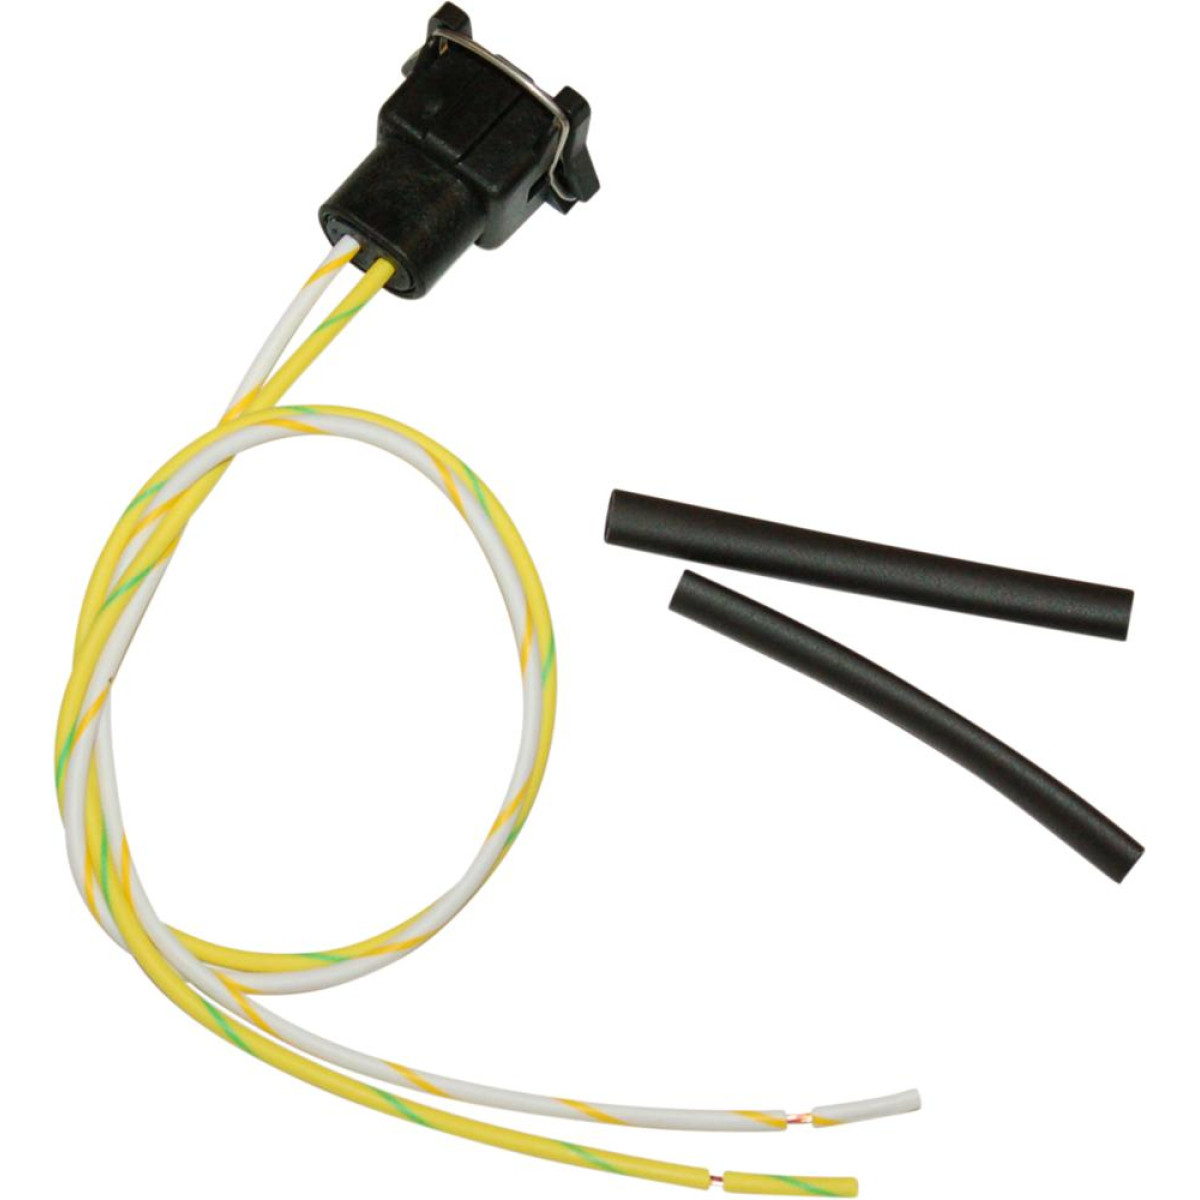 Namz Wiring Harnesses Extension Kits Automotive Harness Pigtails Delphi Pigtail Connector 2 Position Plug Connects Front Fuel Injector And Rear